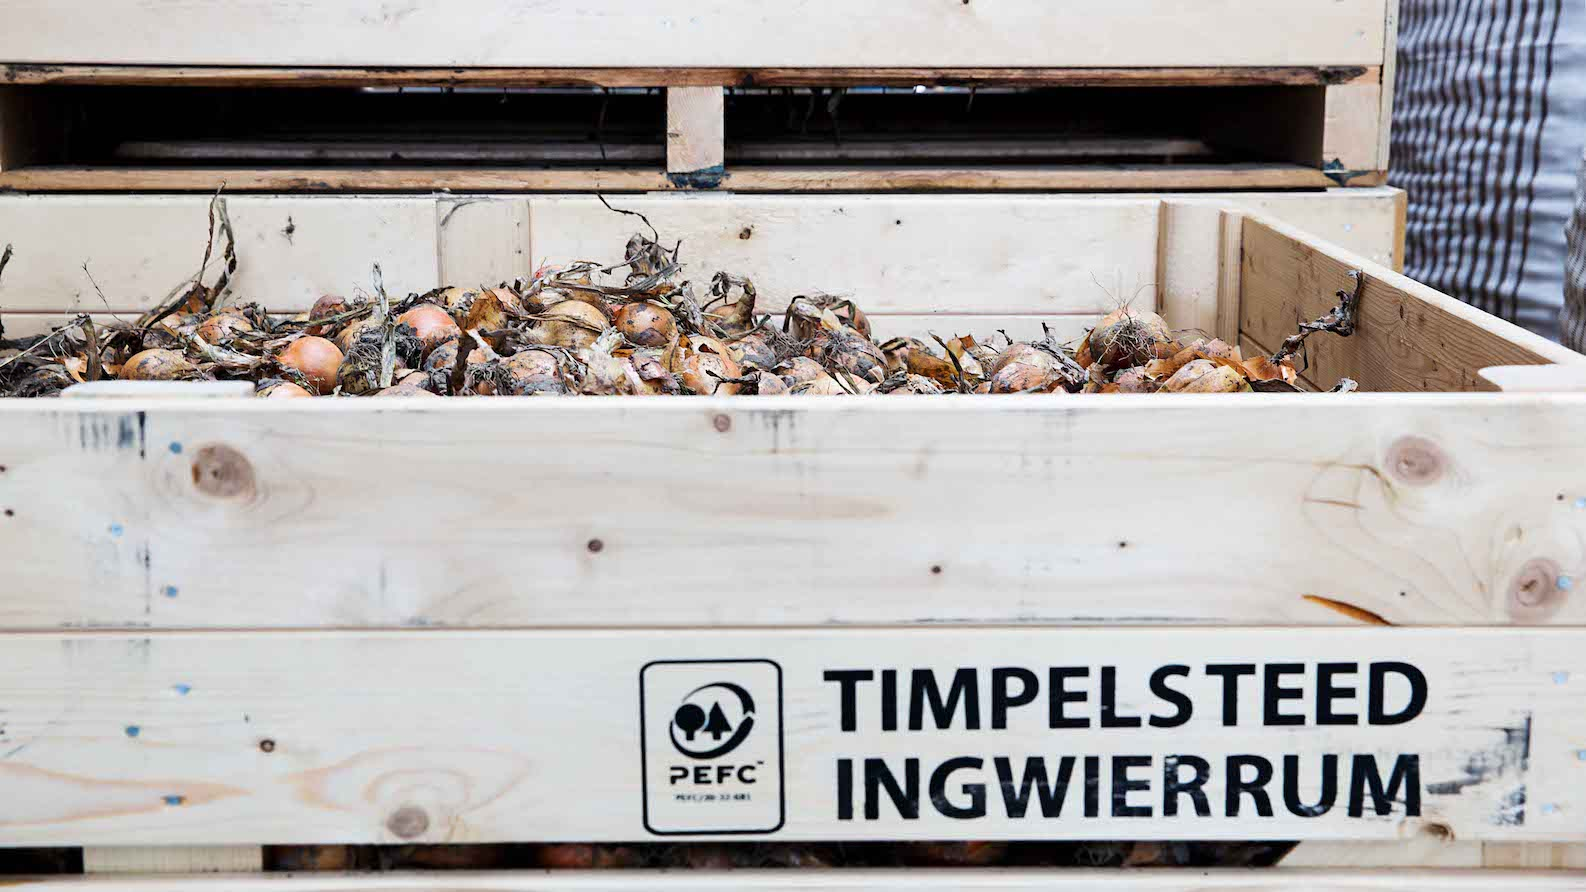 Engie/Timpelsteed 2